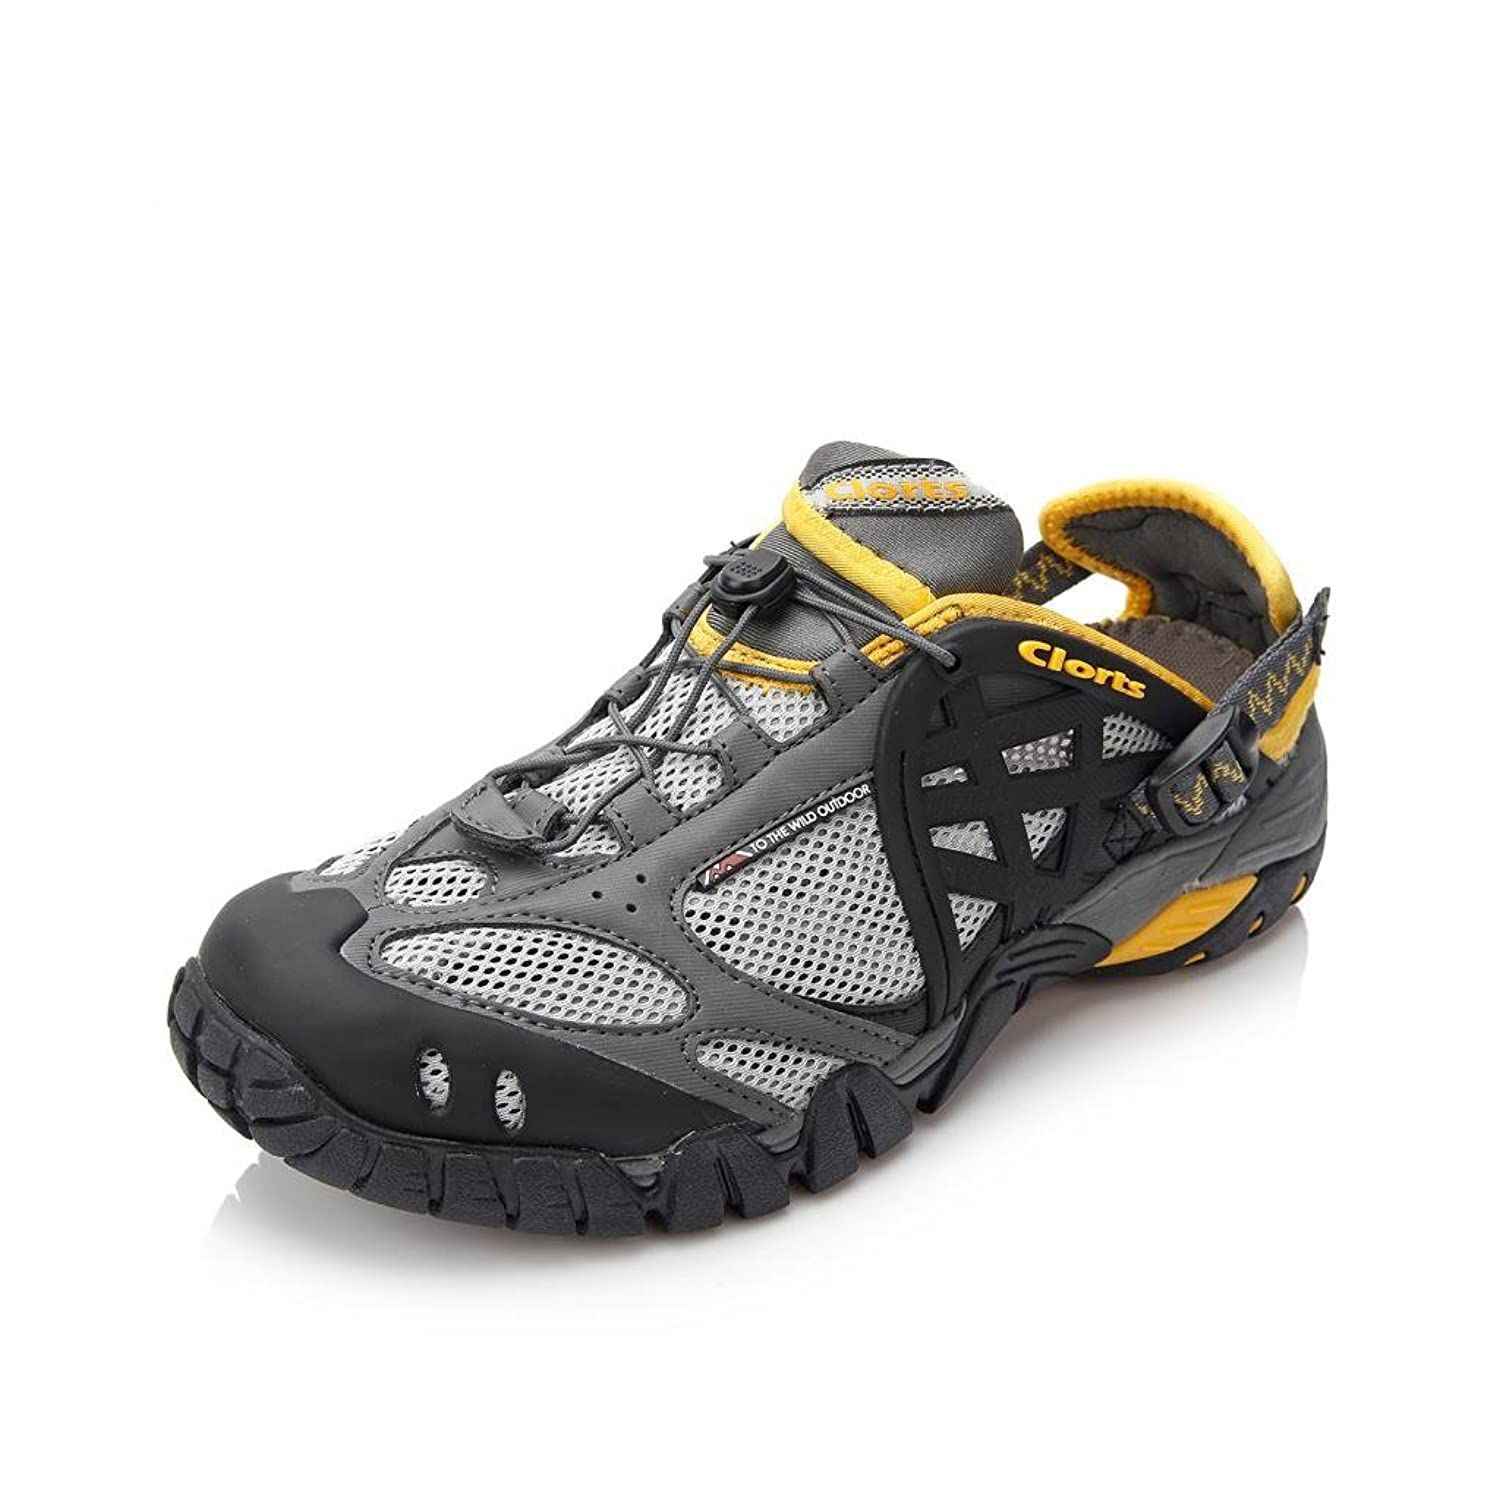 Mens Water Shoes Amazon